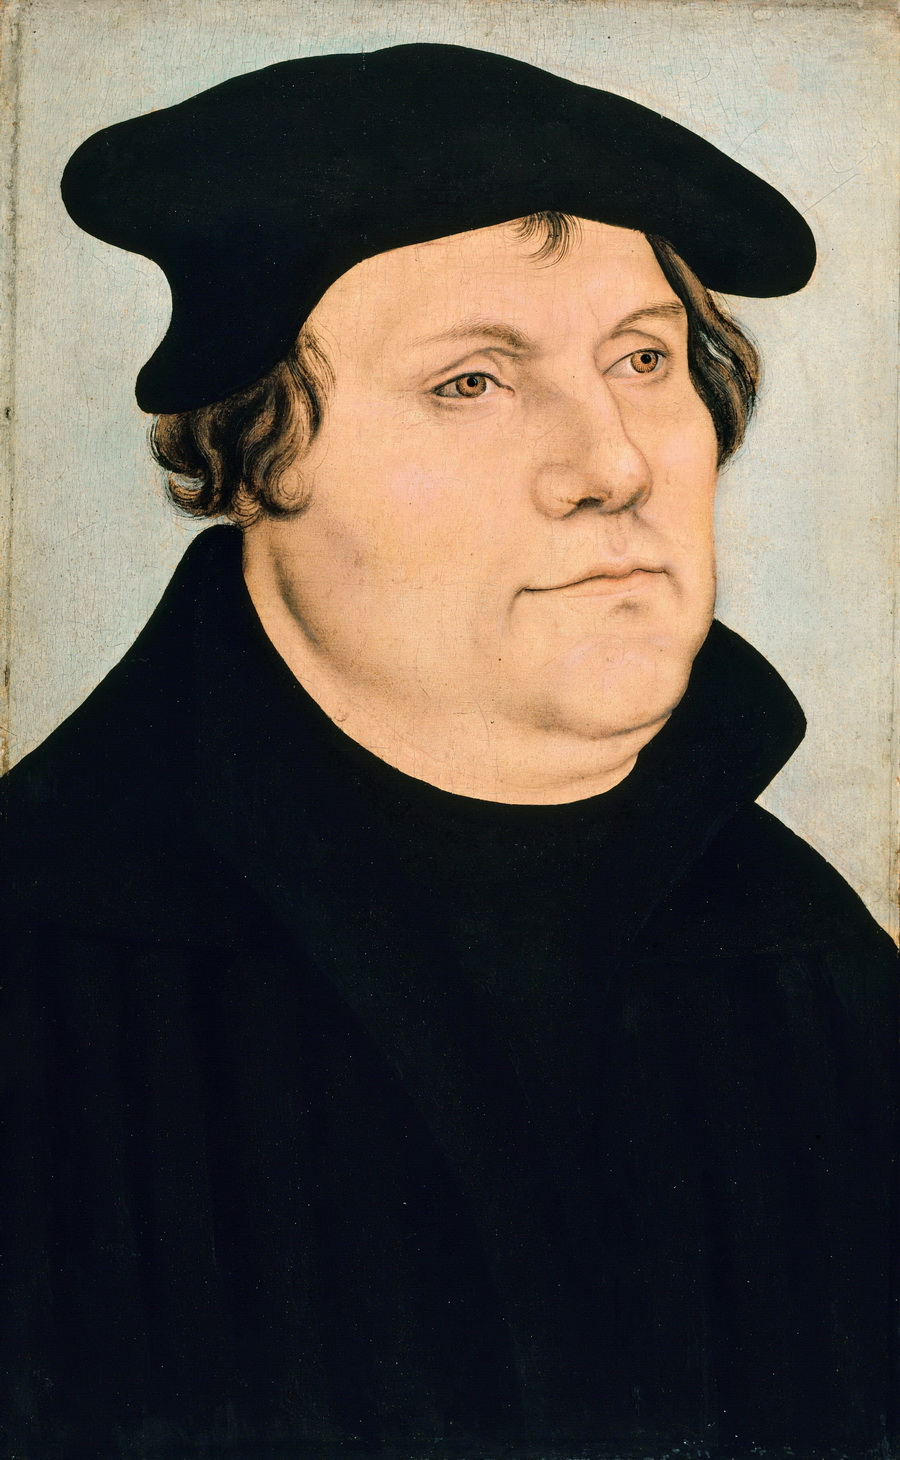 Lucas Cranach I workshop - Martin Luther - Gemäldegalerie Berlin-900